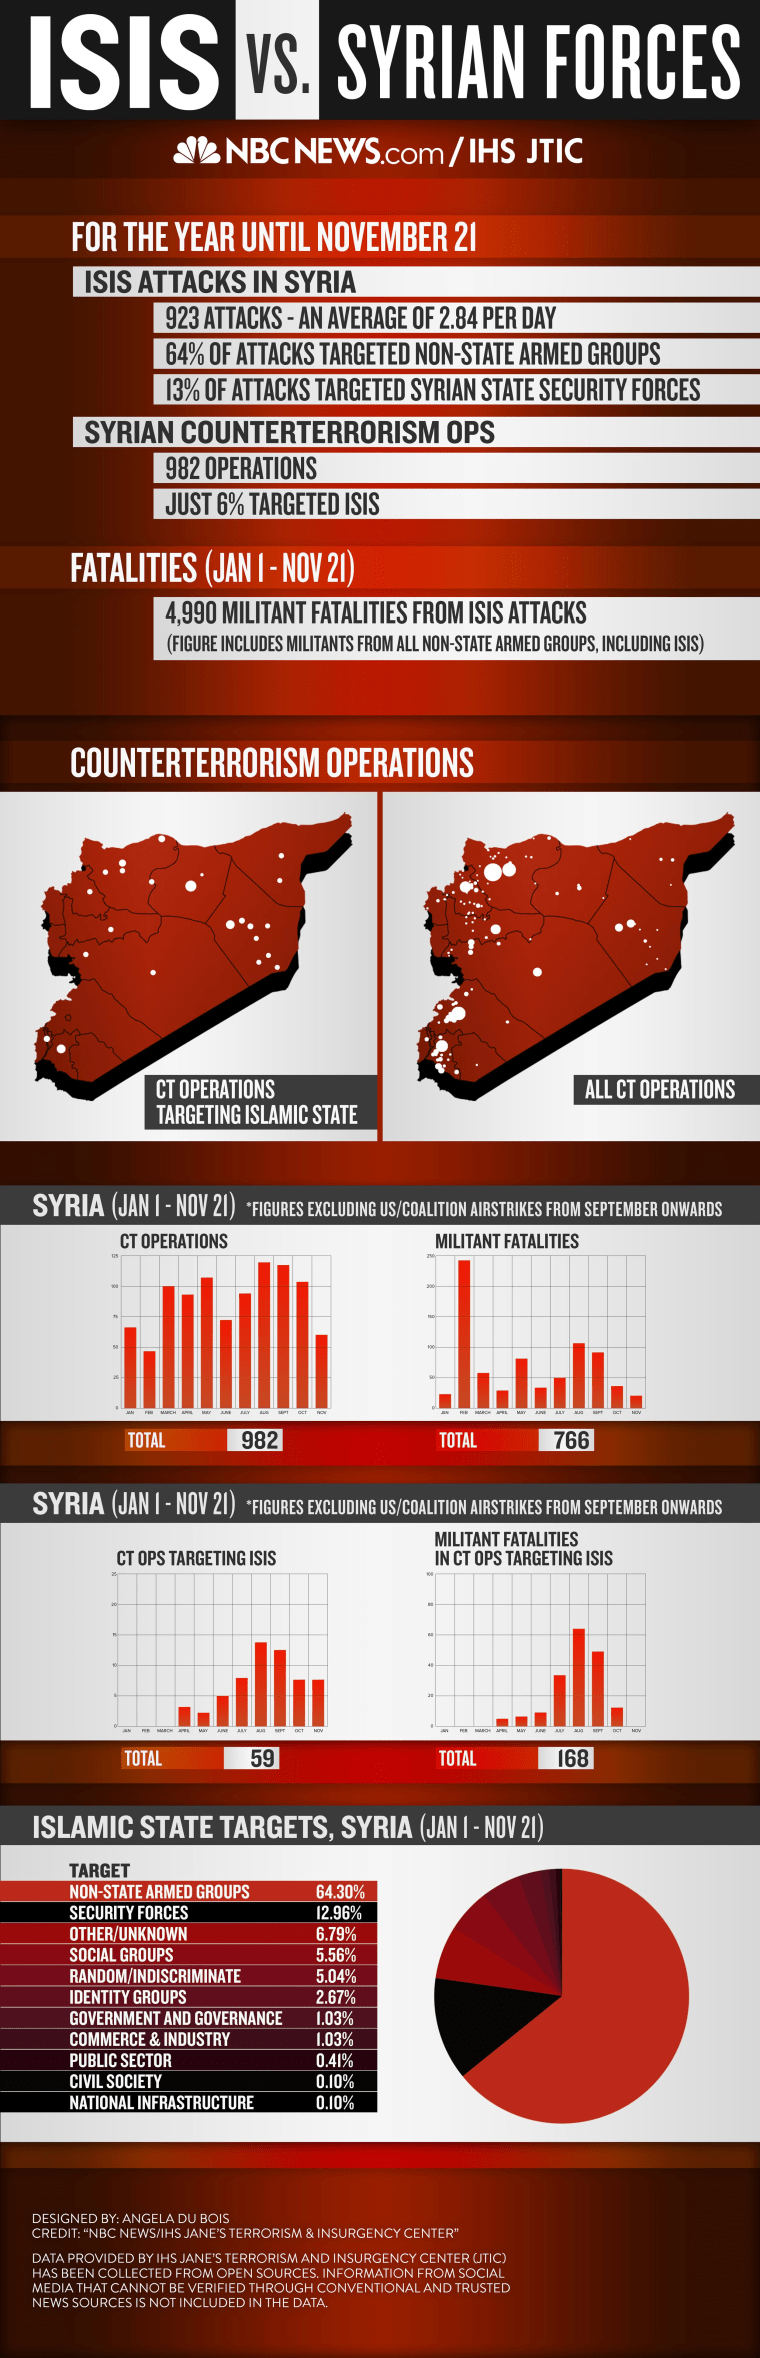 Image: Data on Syrian regime operations against ISIS and ISIS attacks against Syrian government forces.